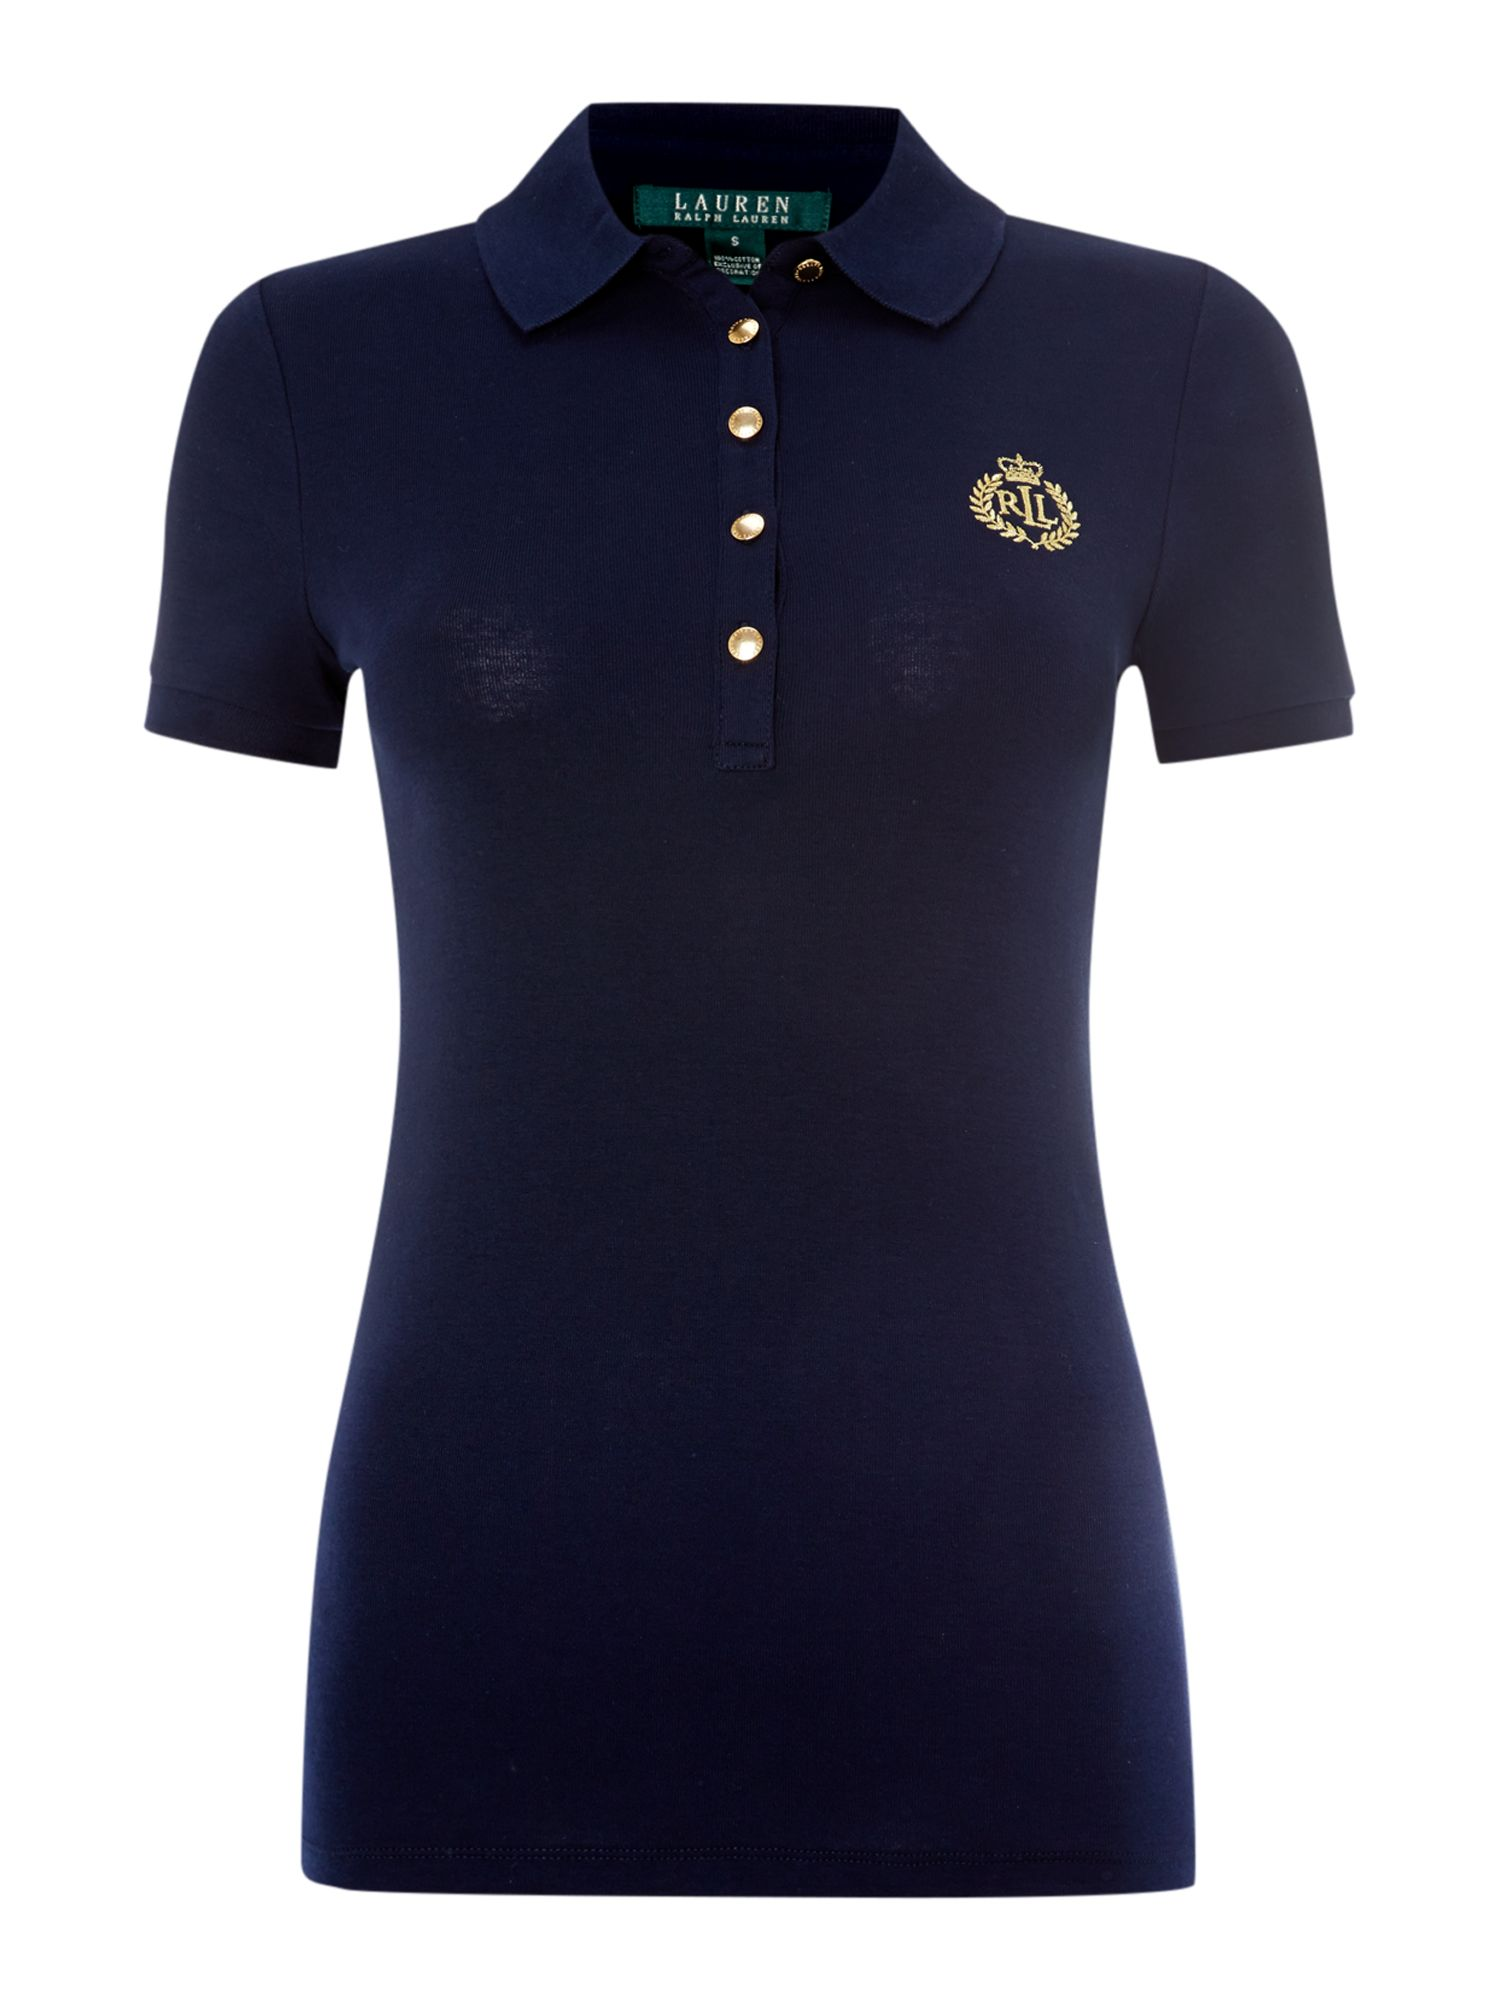 Short sleeved polo top with crest